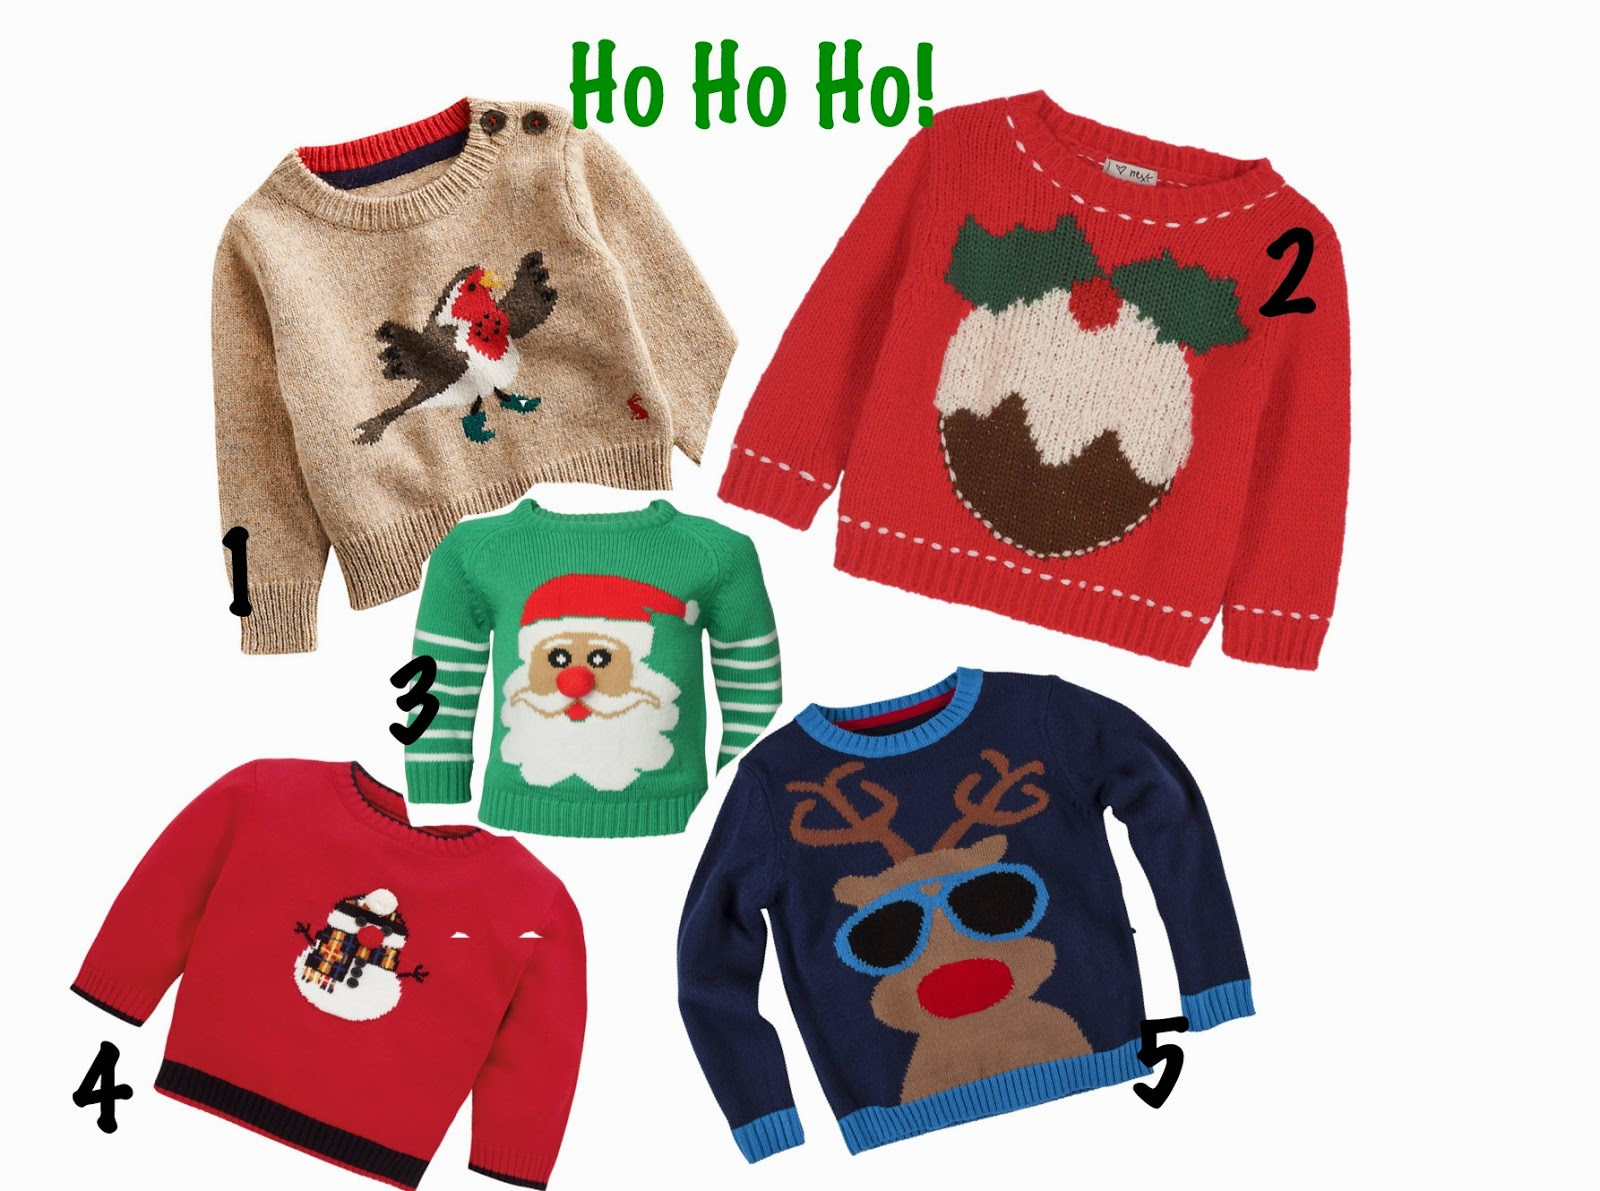 mamasVIB | V. I. BUYS: Jump to It! The best Christmas jumpers for kids!, christmas jumpers | debenhams| Marks & spencer| next | joules | telco | festive dressing | V.I.BABY | kids fashion | style | mamasVIB